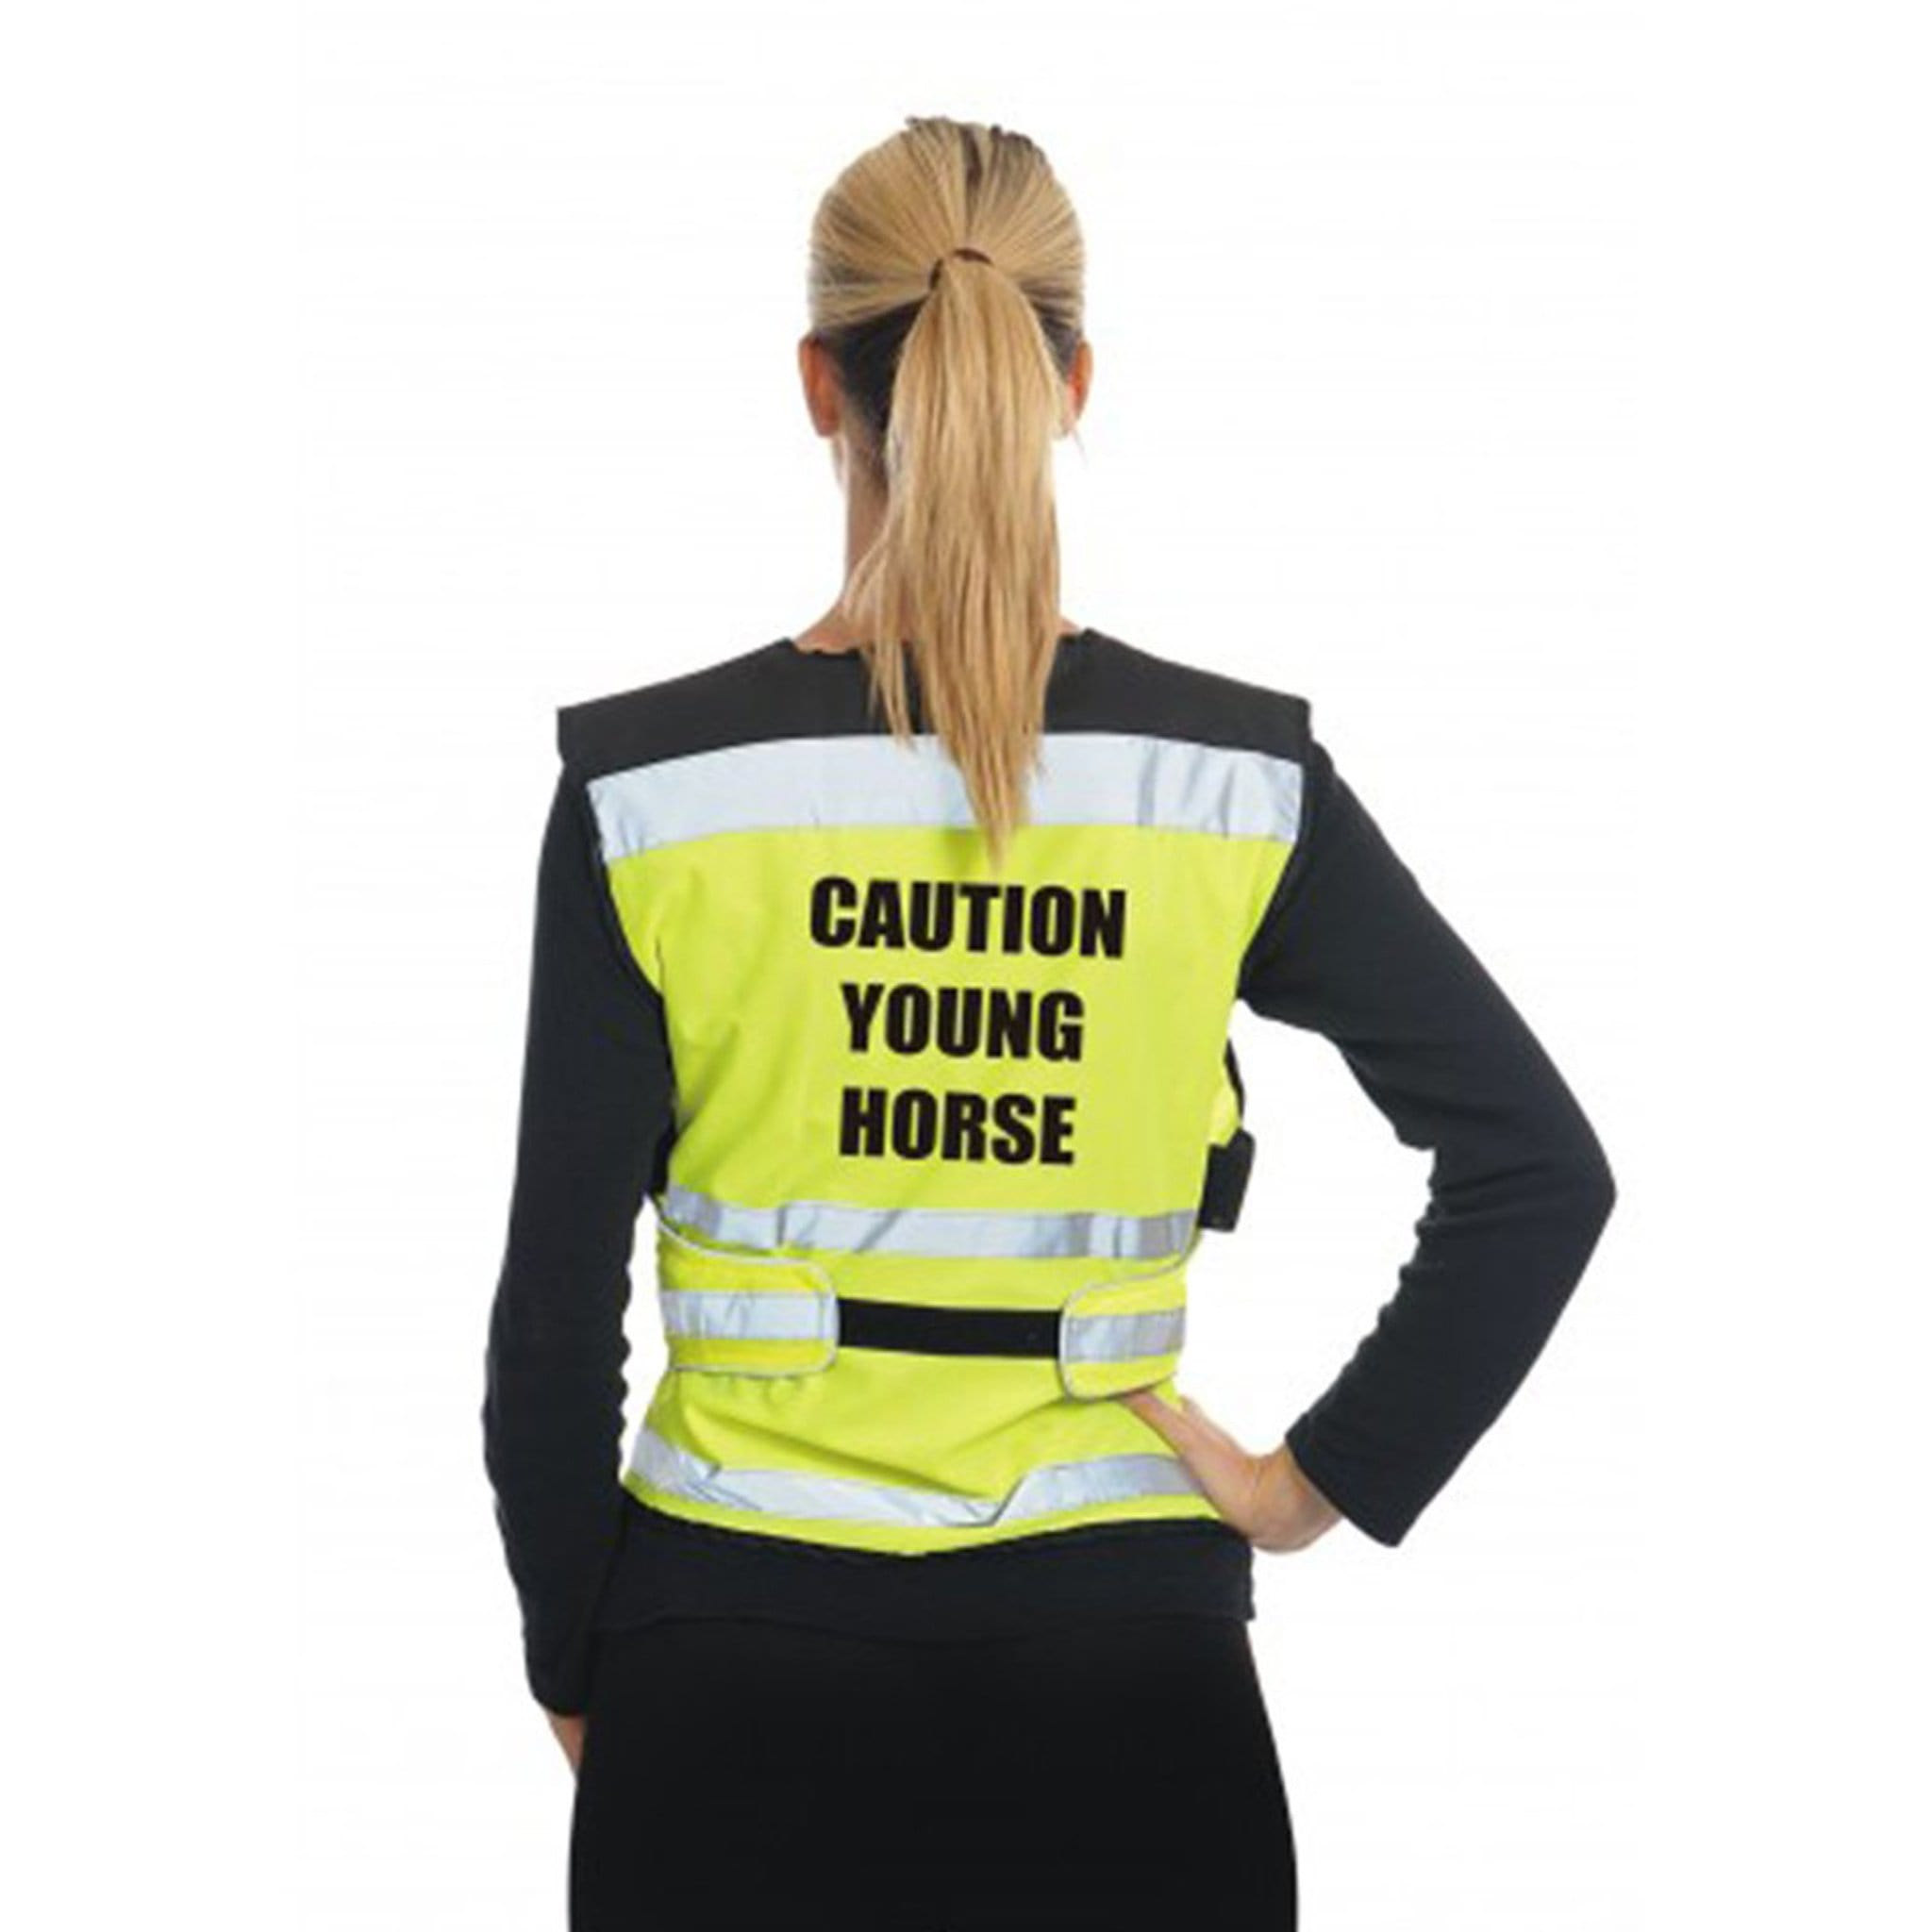 Equisafety Air Waistcoat Caution Young Horse Yellow Rear View AW1CYH0